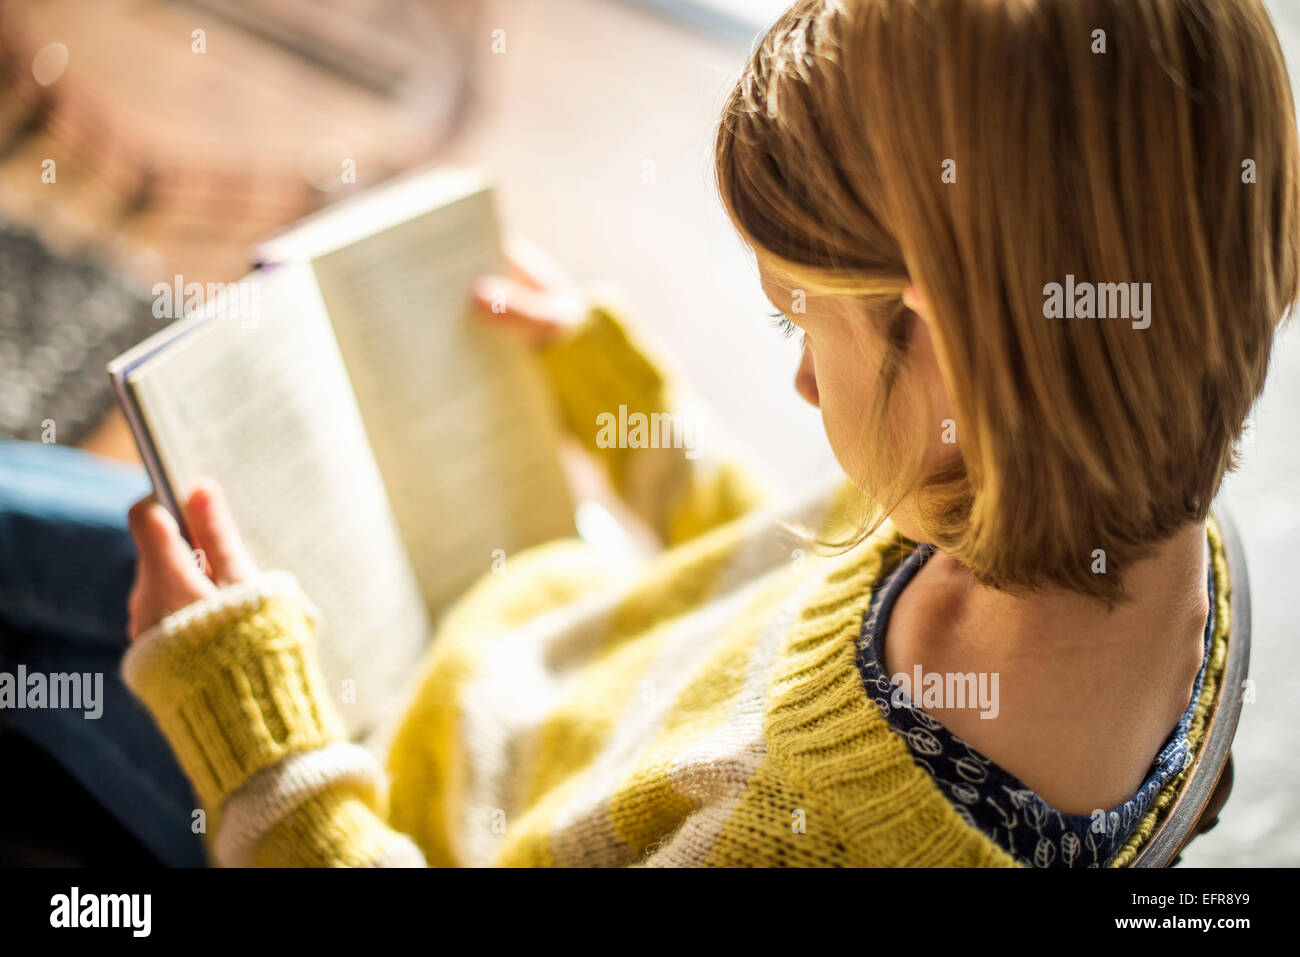 High angle view of a blond girl in a yellow jumper sitting on a chair, reading a book. - Stock Image